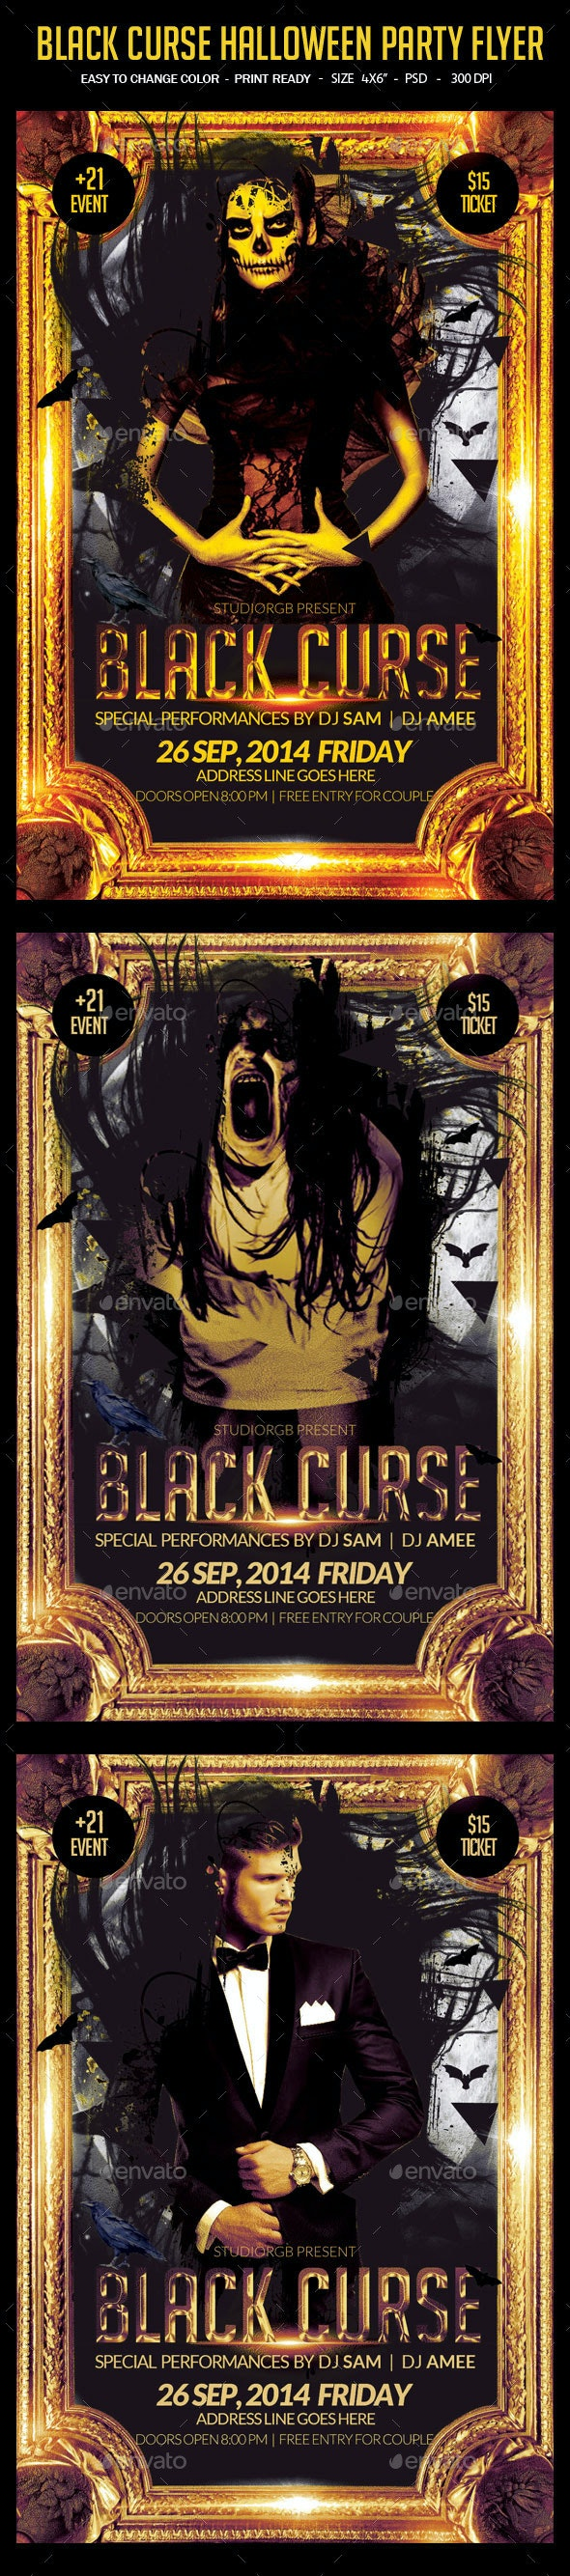 Black Curse Night Party Flyer - Clubs & Parties Events